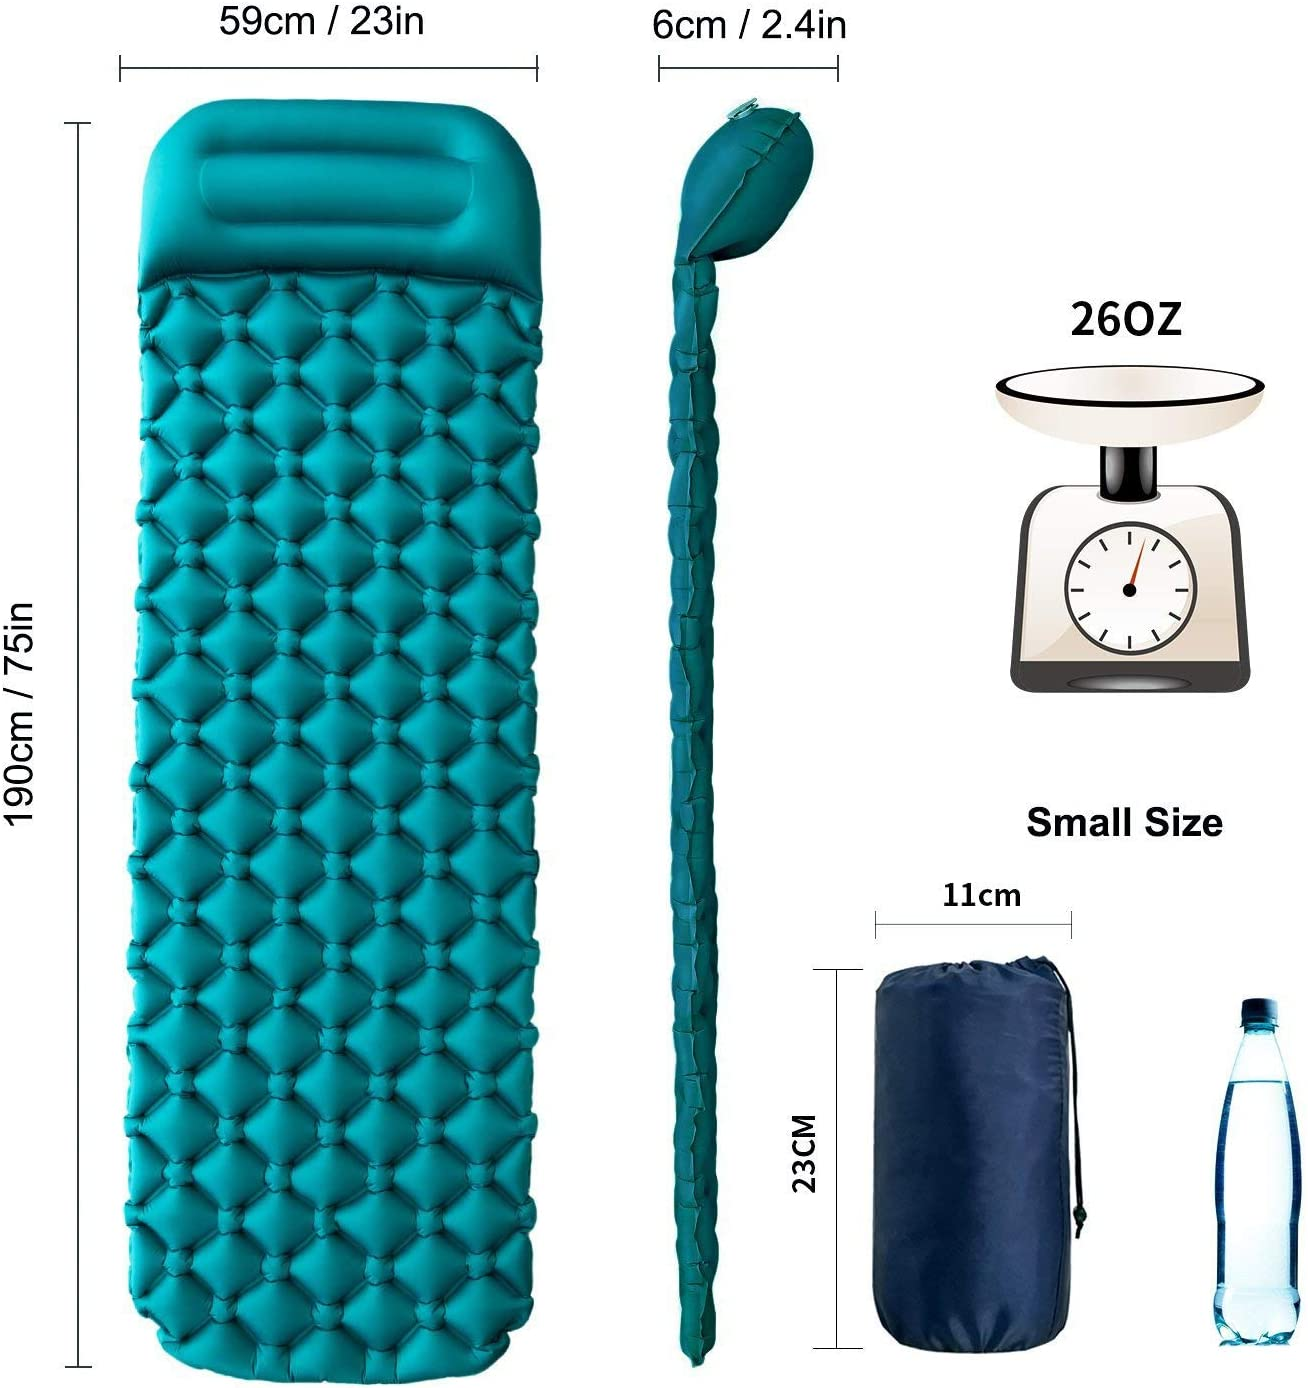 Travling Inflatable sleeping mat with pillow,Ultralight Camping Waterproof Mattress Folding Inflating Single Bed Portable Air Pad for Caming Backpacking(Green)